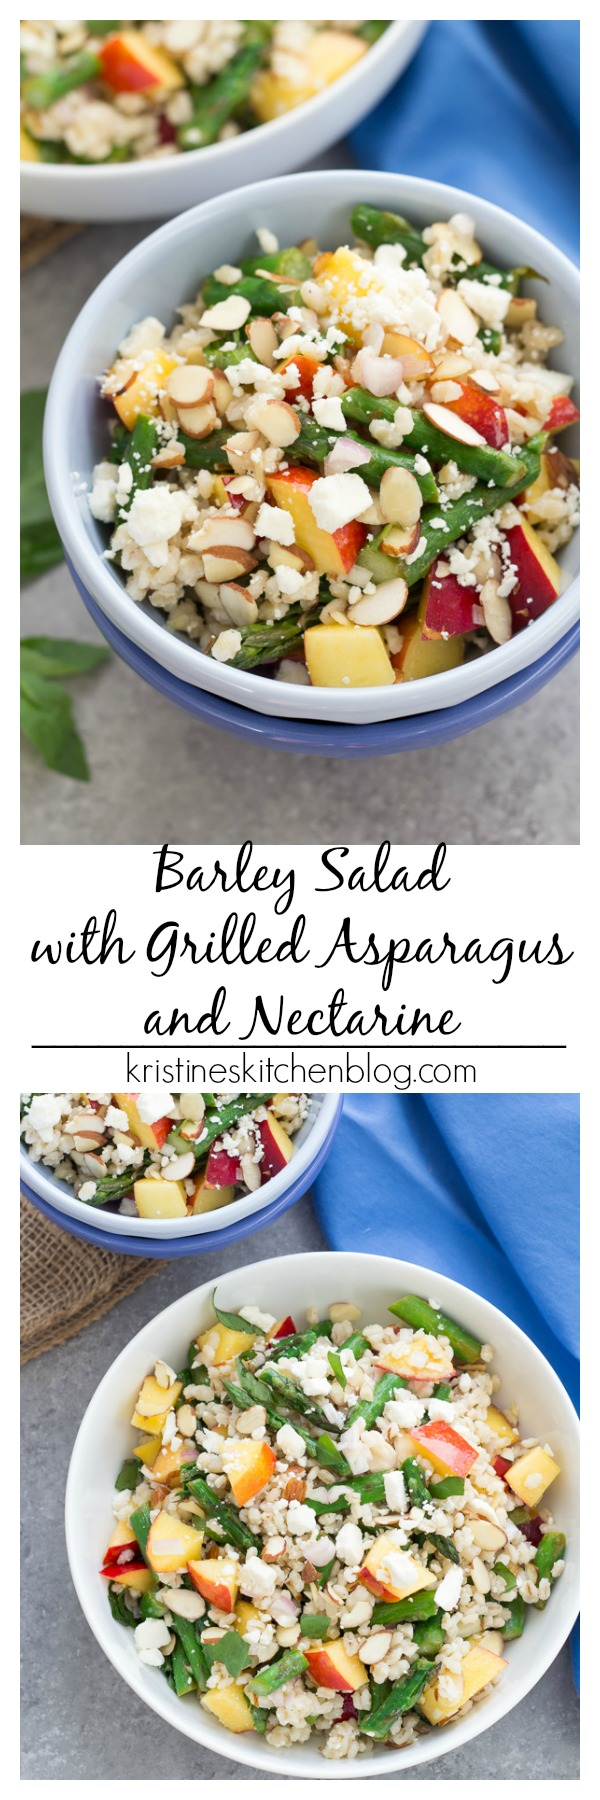 Barley Salad with Grilled Asparagus and Nectarines, plus tangy feta, crunchy almonds and a light honey-lemon dressing! The best side dish or lunch!